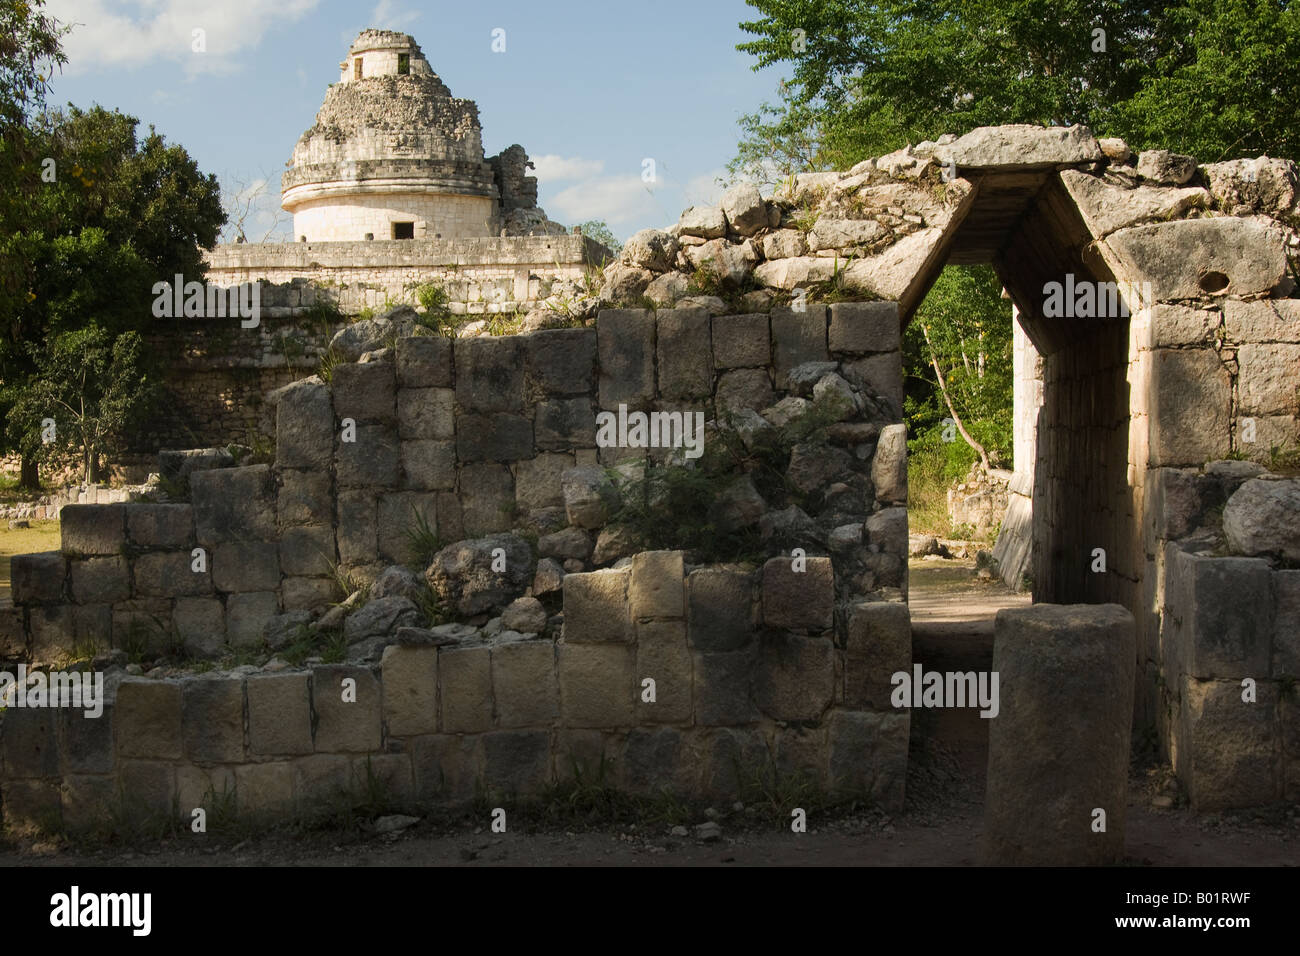 Chichen Itza, The Observatory, Maya Ruins - Stock Image